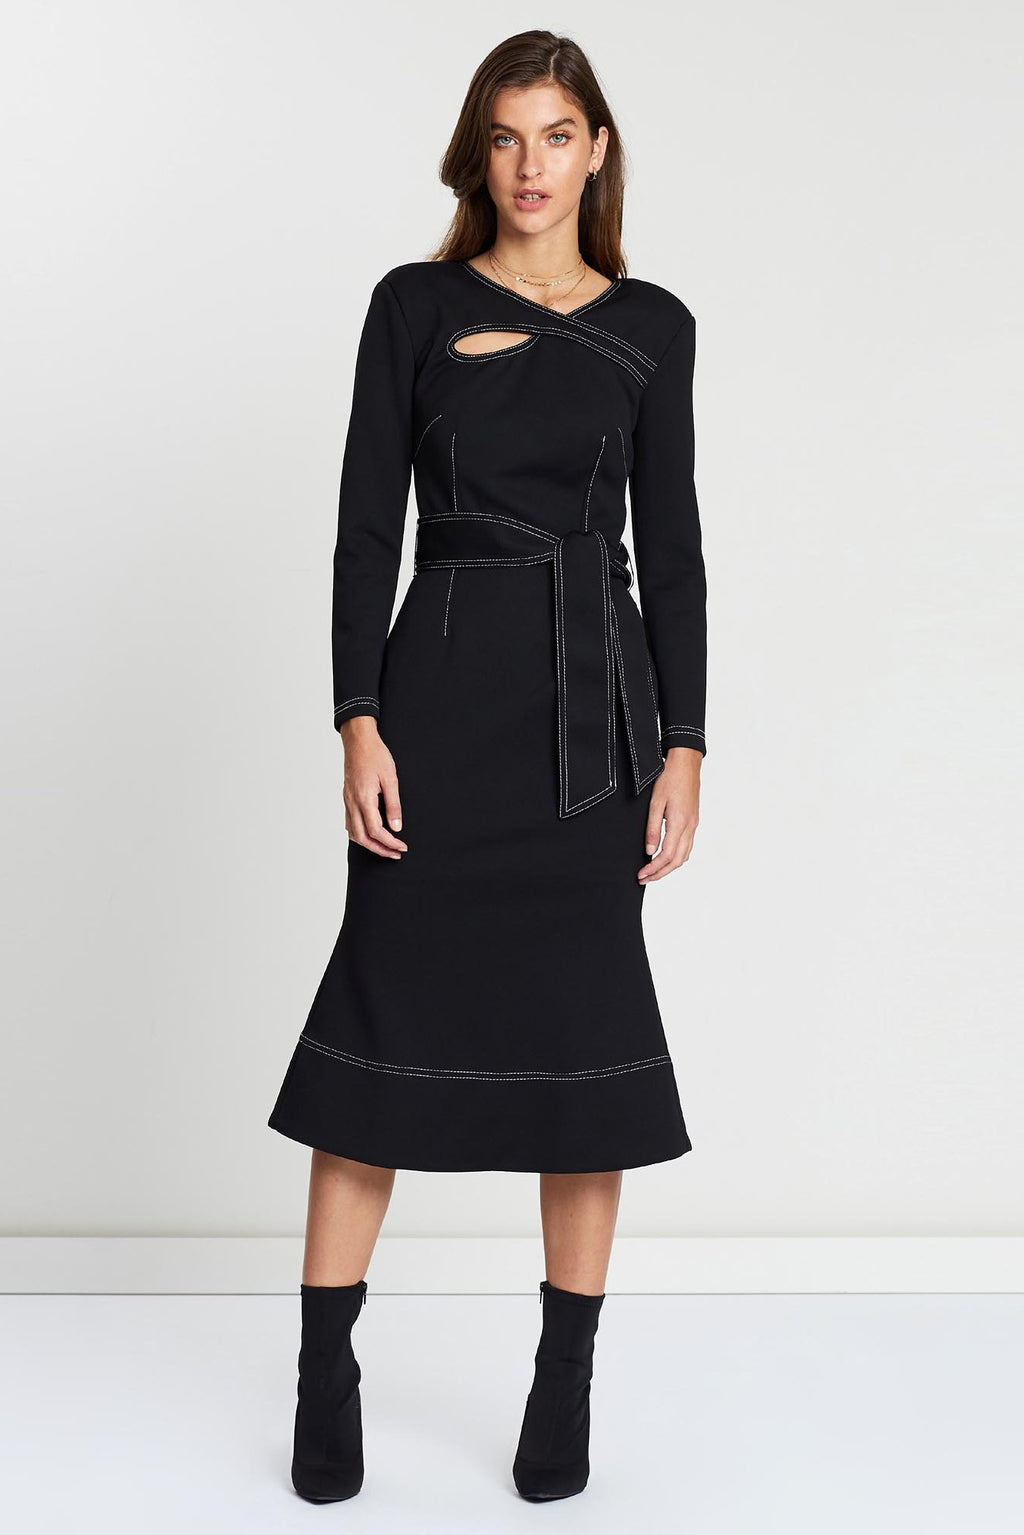 Elliatt Chiara Long Sleeve Dress in Black